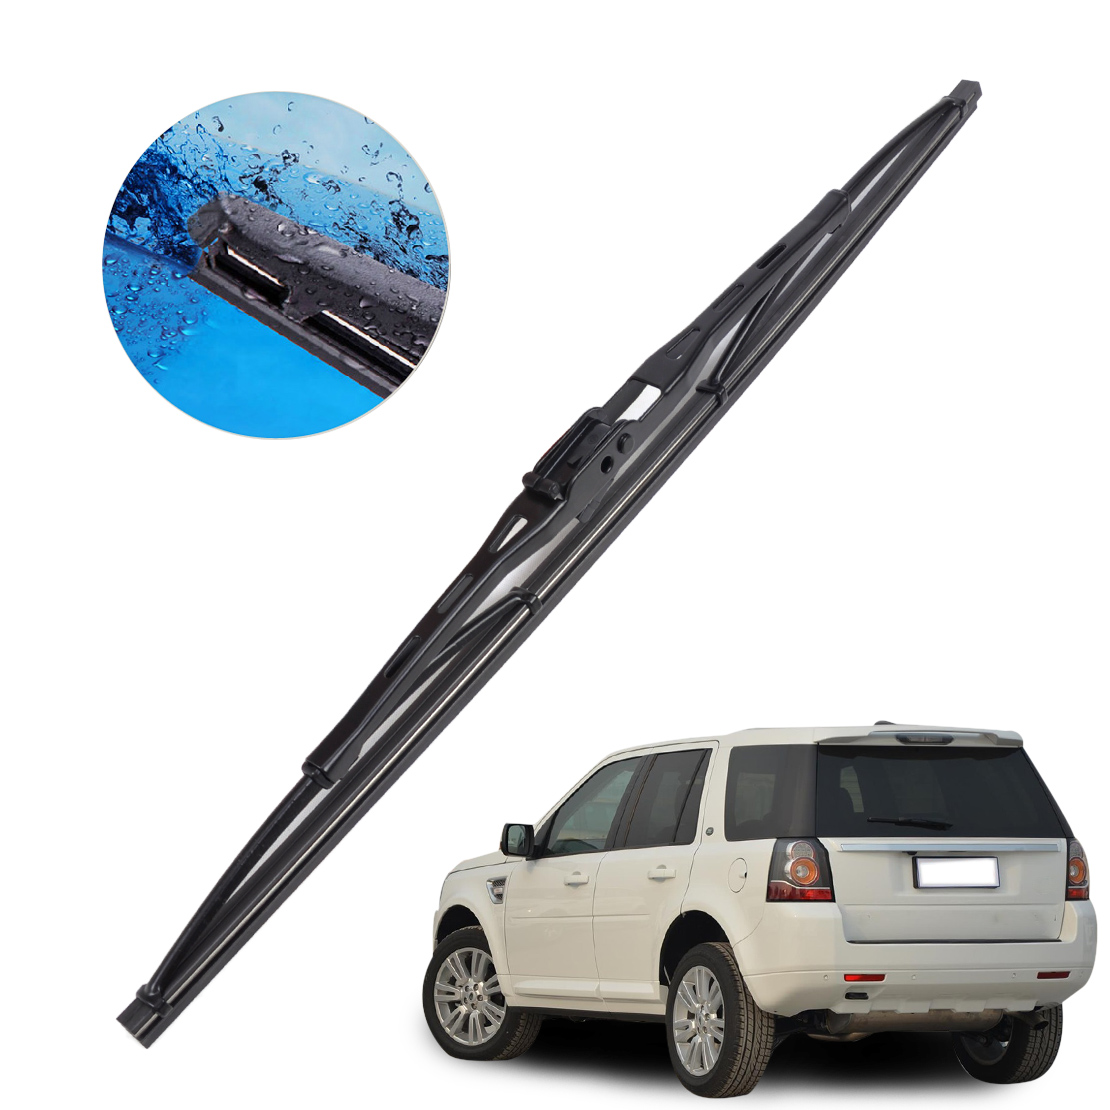 CITALL Stronger Resistance Rear Window Windshield Windscreen Wiper Blade For Land Rover Range Rover Sport 2006 - 2009 2010 2011